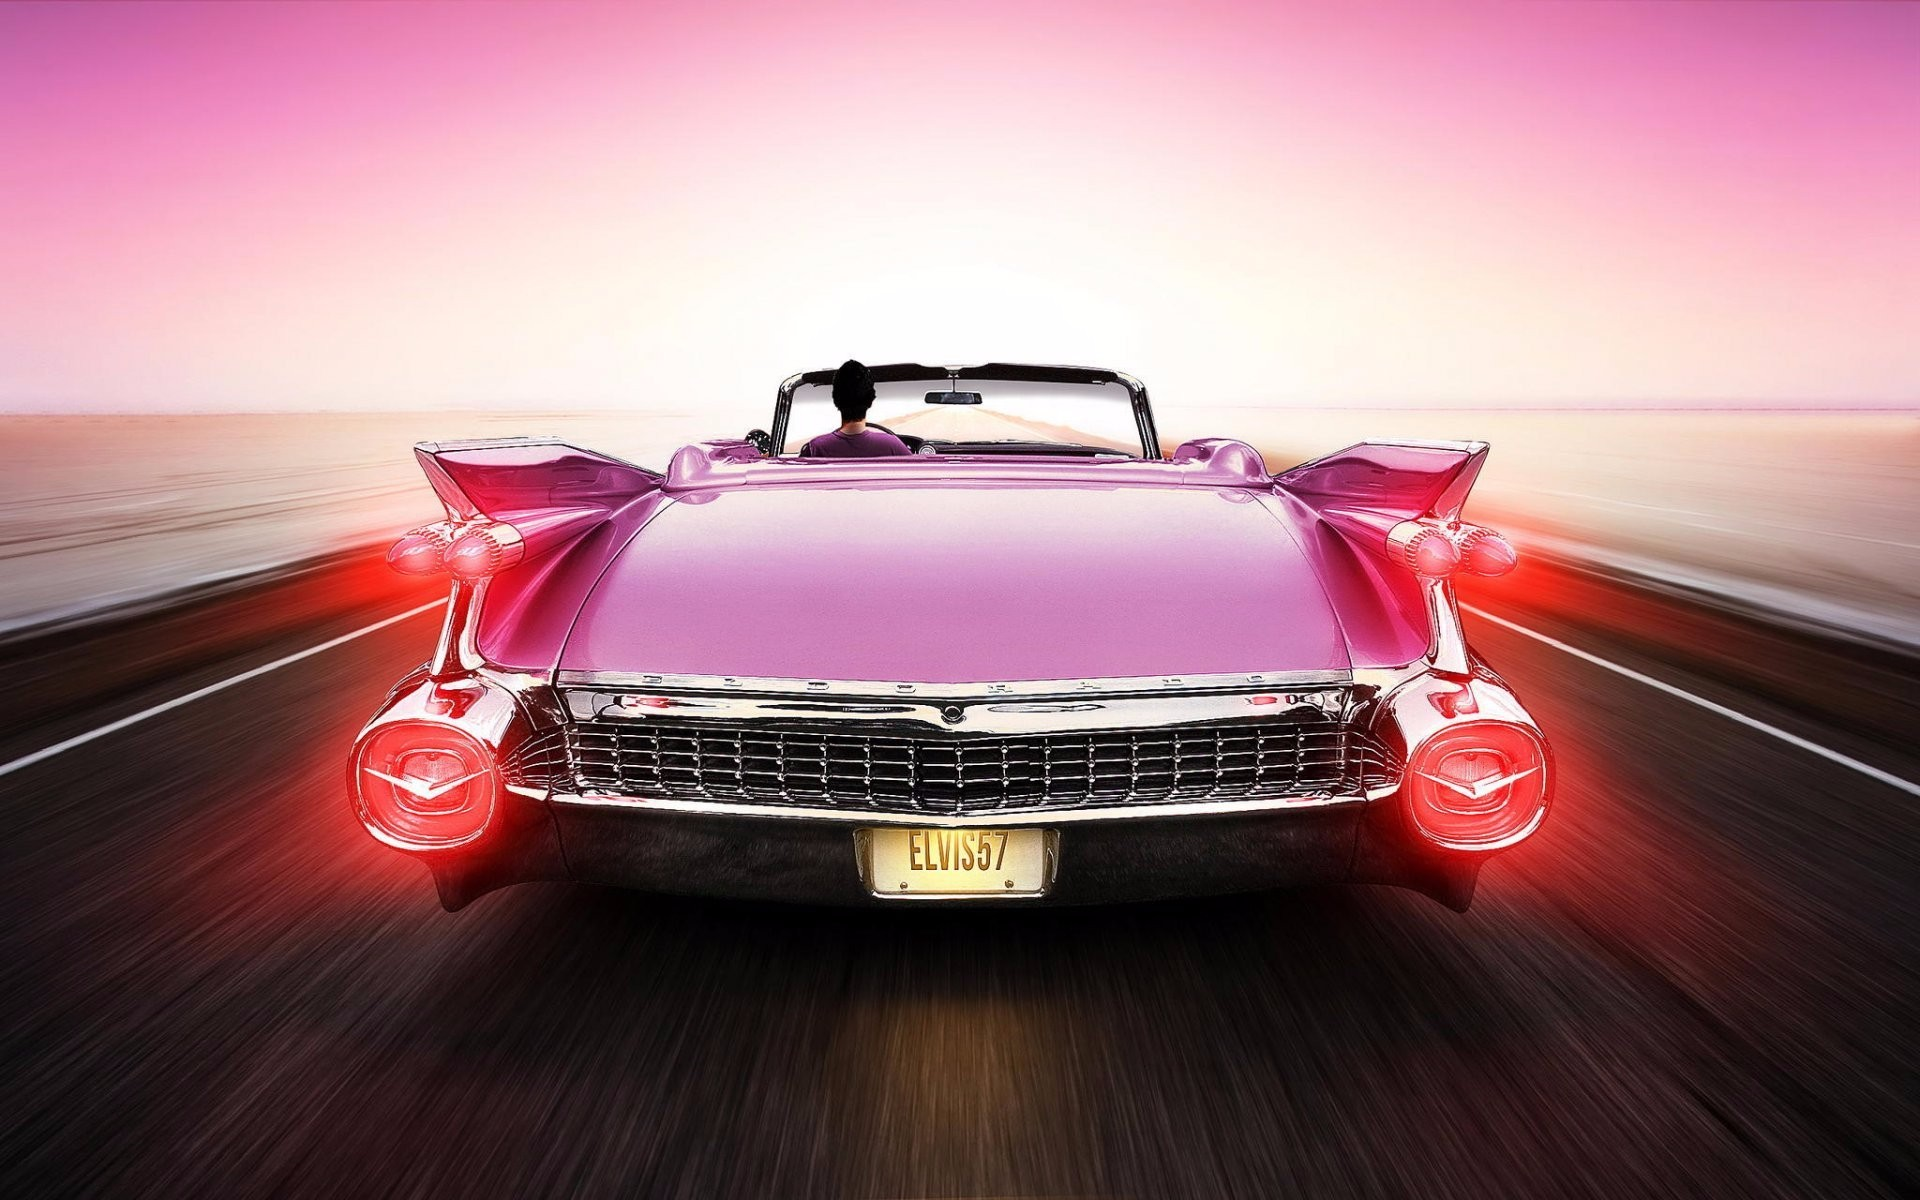 Old Cadillac Cars Hd Wallpapers Cadillac Hd Cars 4k Wallpapers Images Backgrounds